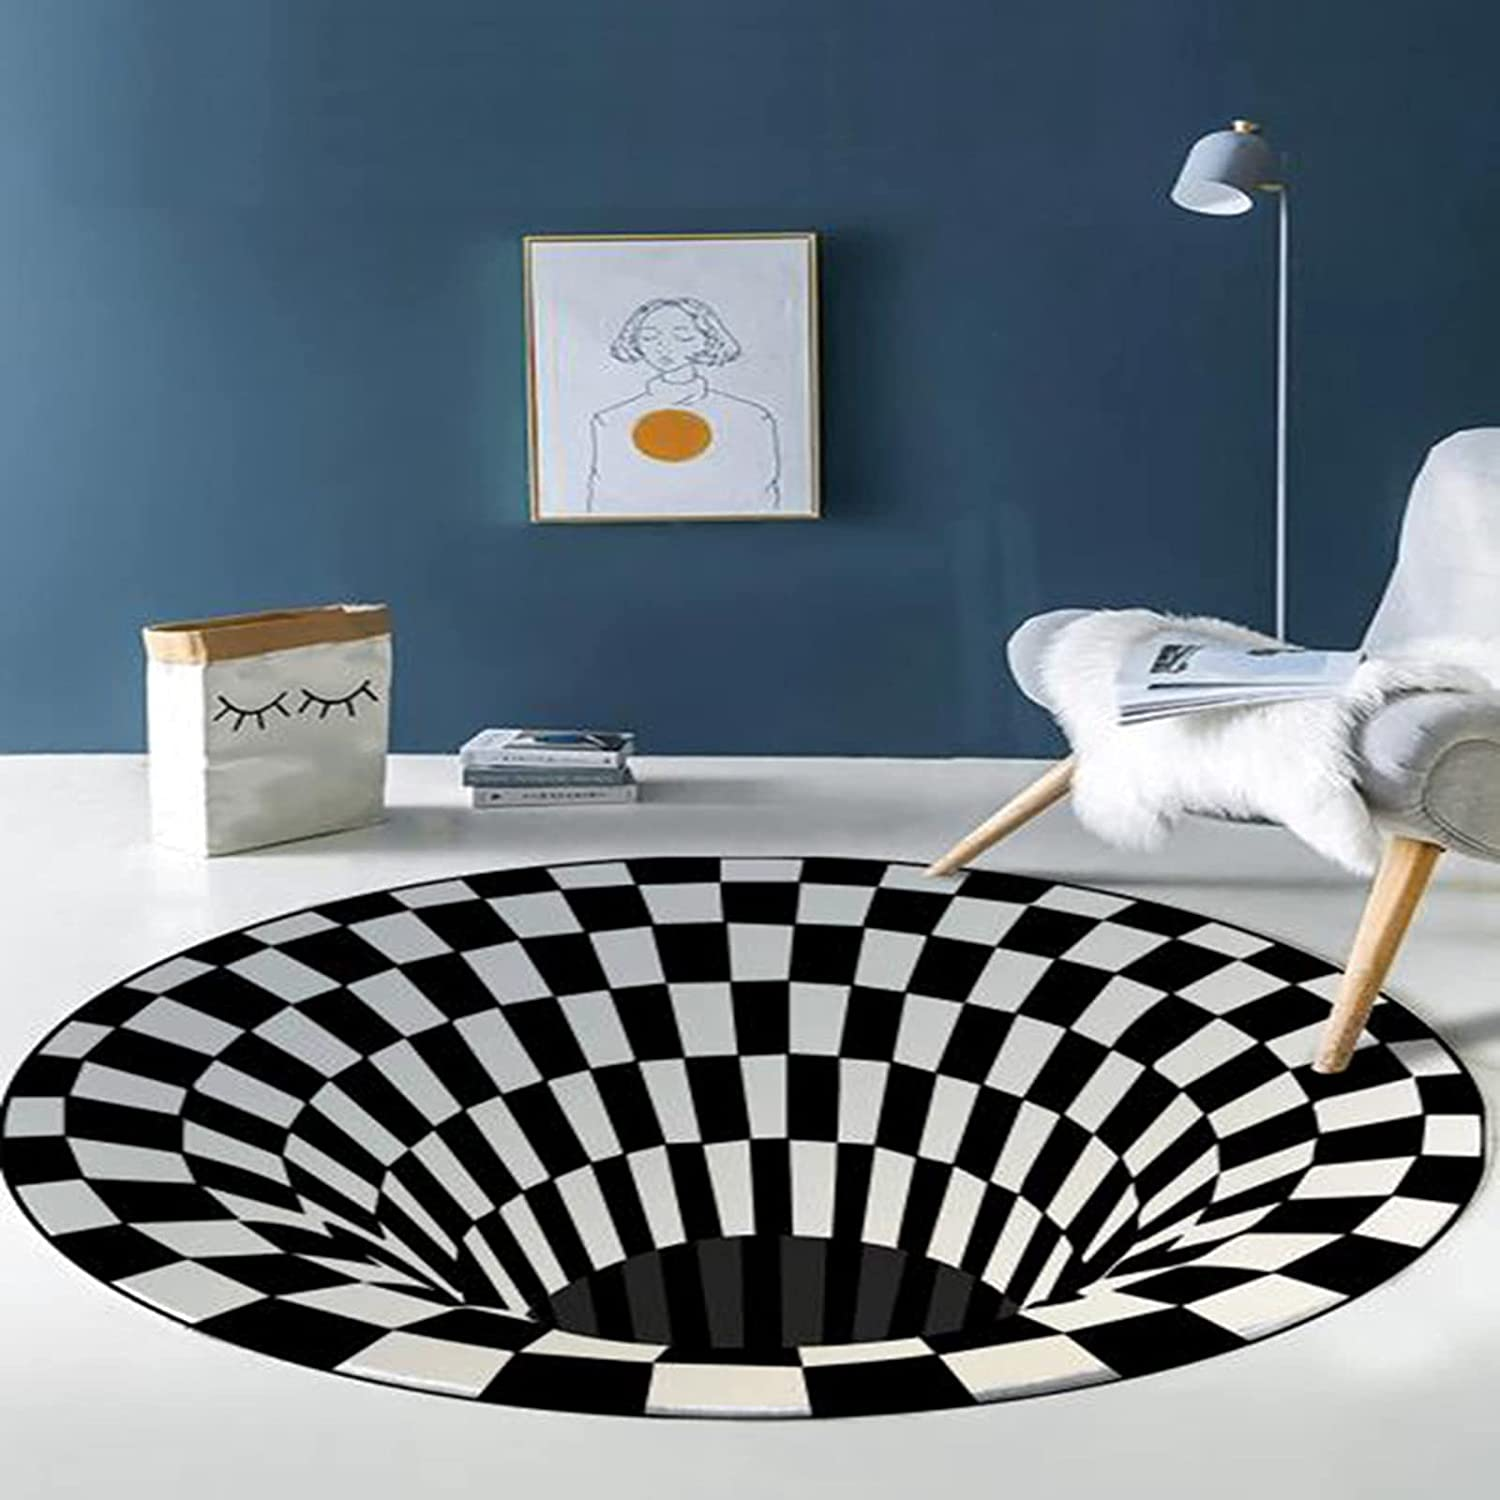 XQBAIHUO Recommendation Round Carpets 3D Bottomless Hole Area Optical Illusion Ranking TOP20